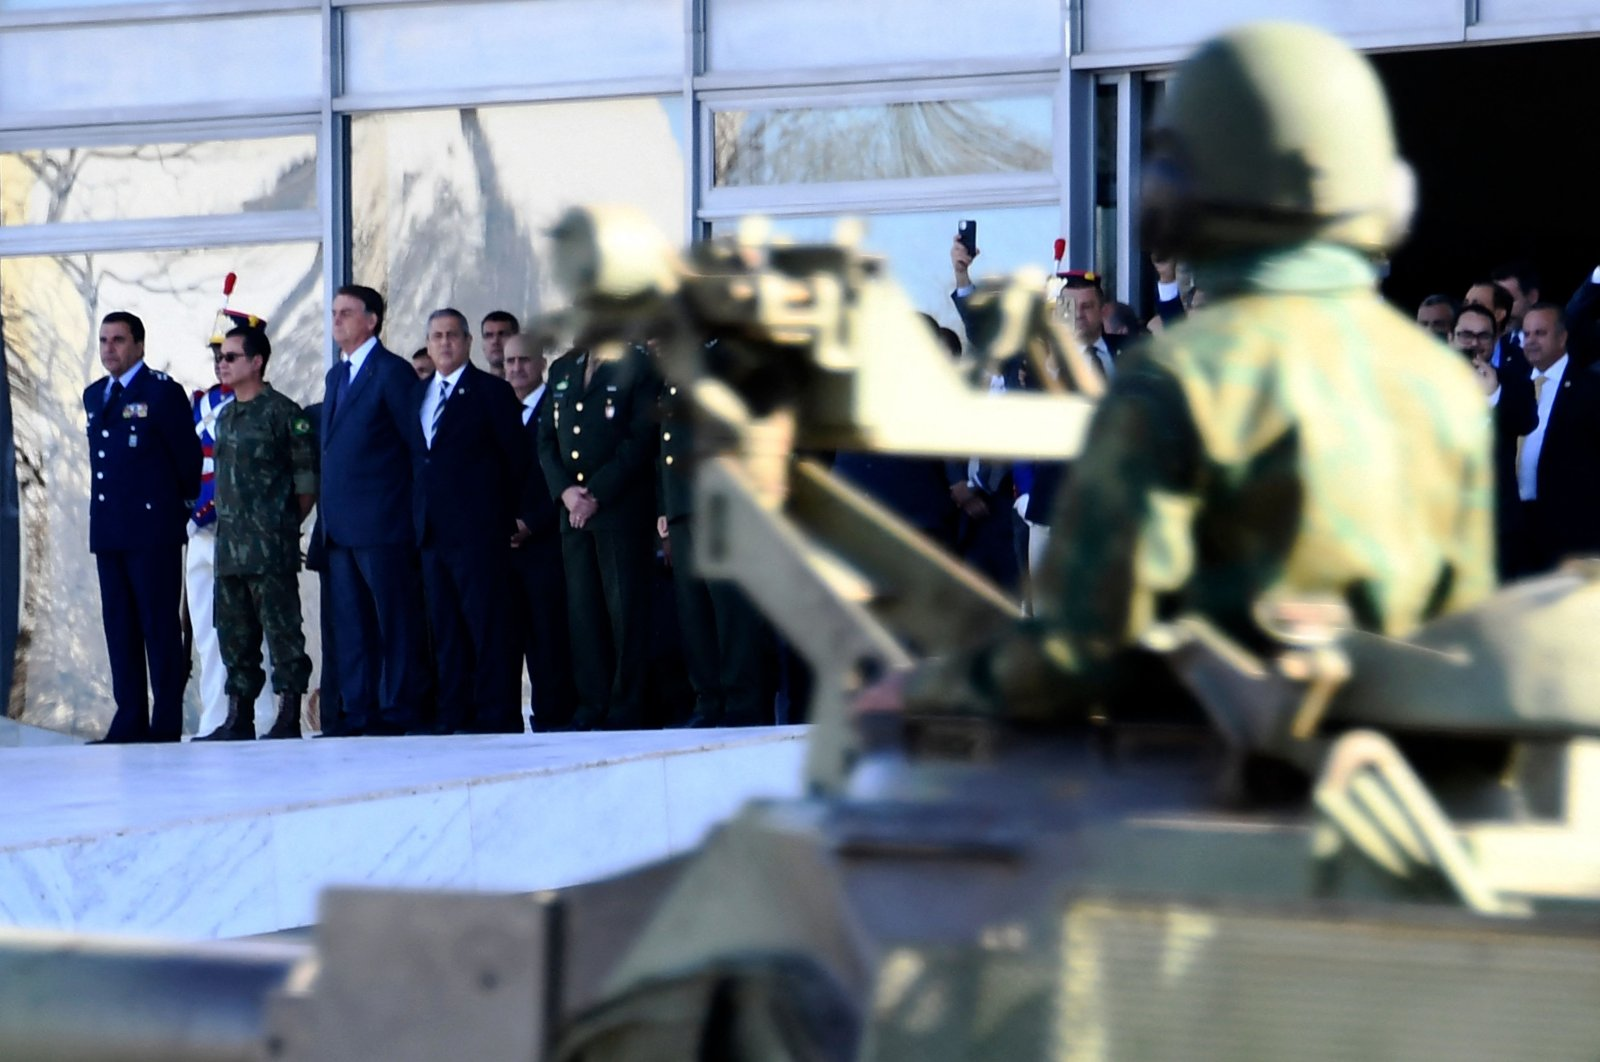 Brazilian President Jair Bolsonaro, accompanied by ministers and military commanders, attends a military parade in front of the Planalto Palace in Brasilia, Brazil, on Aug. 10, 2021. (AFP Photo)